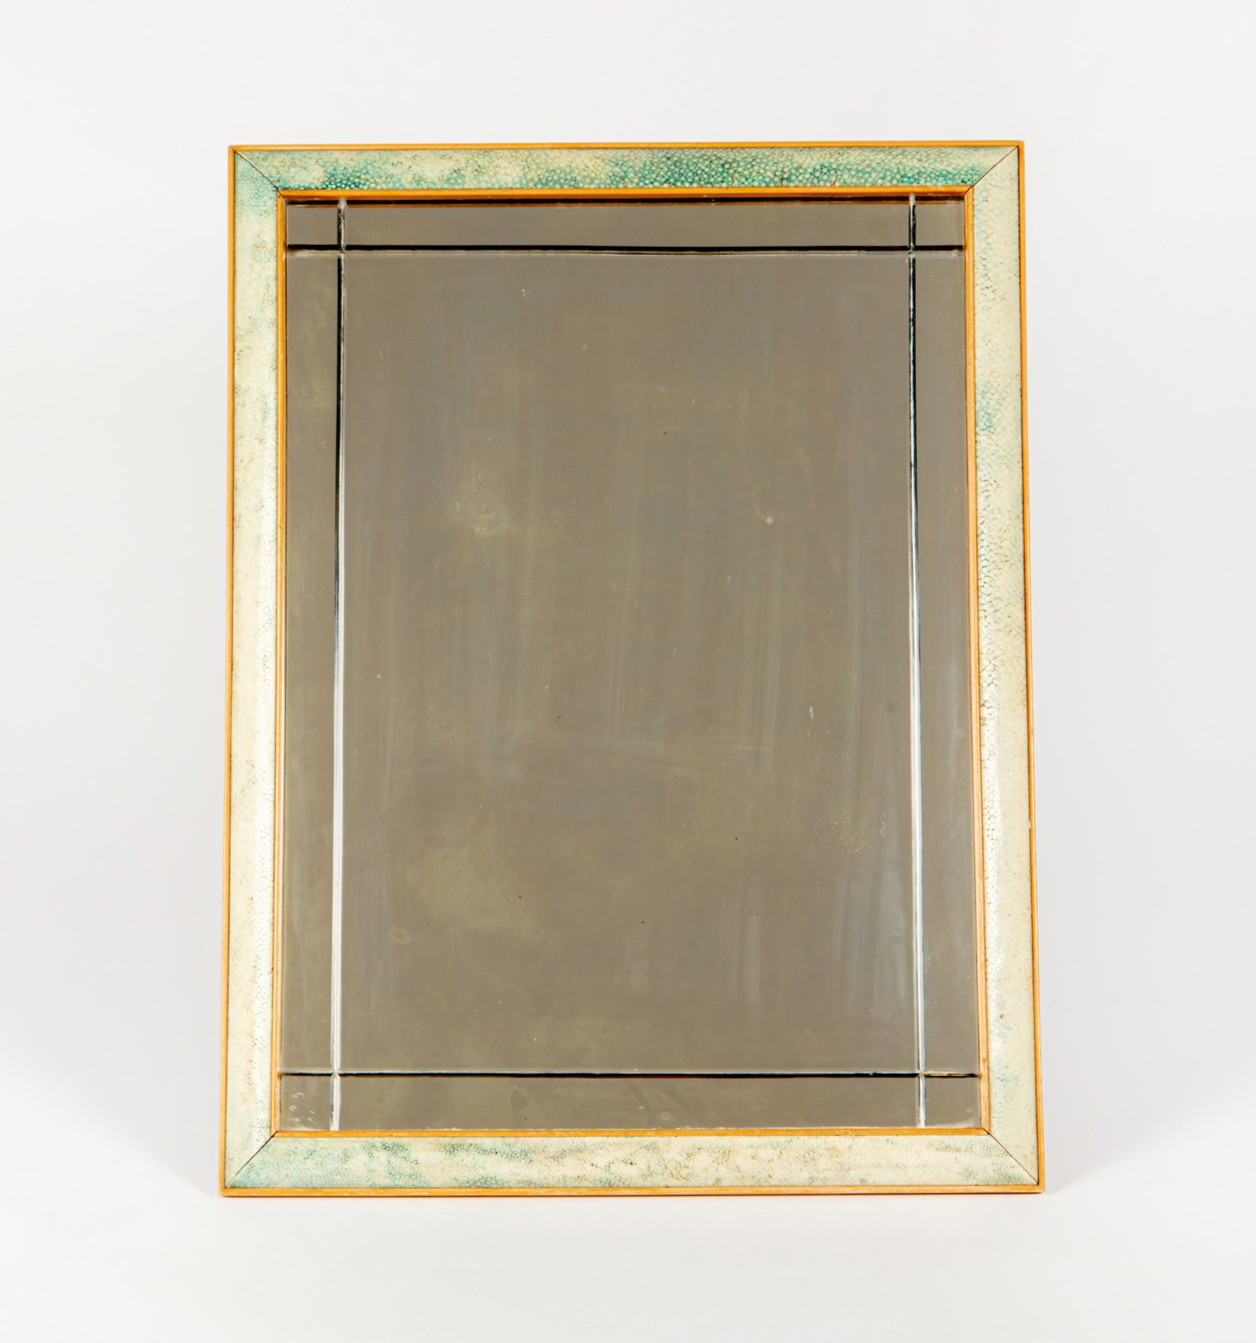 A Shagreen and box wood easel mirror, circa 1920